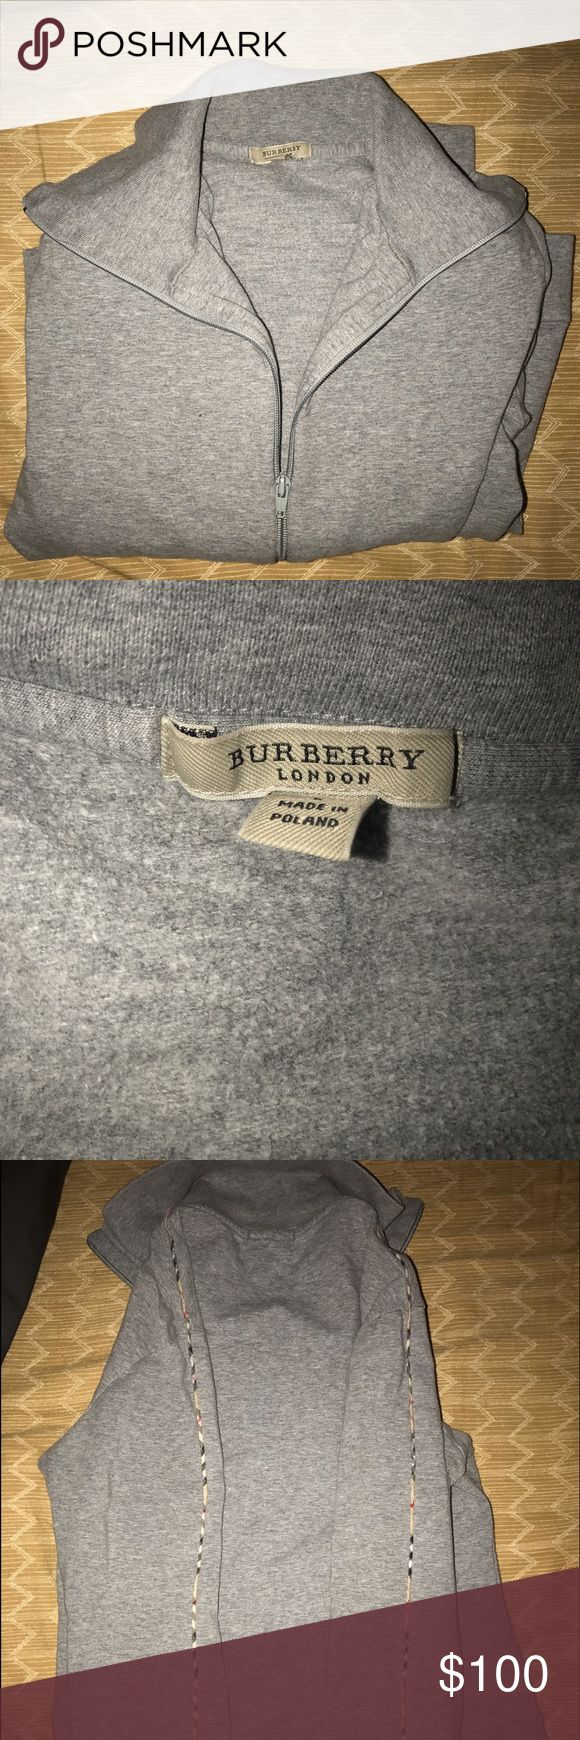 Burberry Zip Up Great Burberry lightweight jacket! Good for any occasion! 100 percent authentic, wife has had over a year and after pregnancy couldn't fit! Has a Burberry theme stripe coming through the entire back side of jacket! Size is large but does fit smaller. Will negotiate! Great gift for the holidays! Burberry Tops Sweatshirts & Hoodies